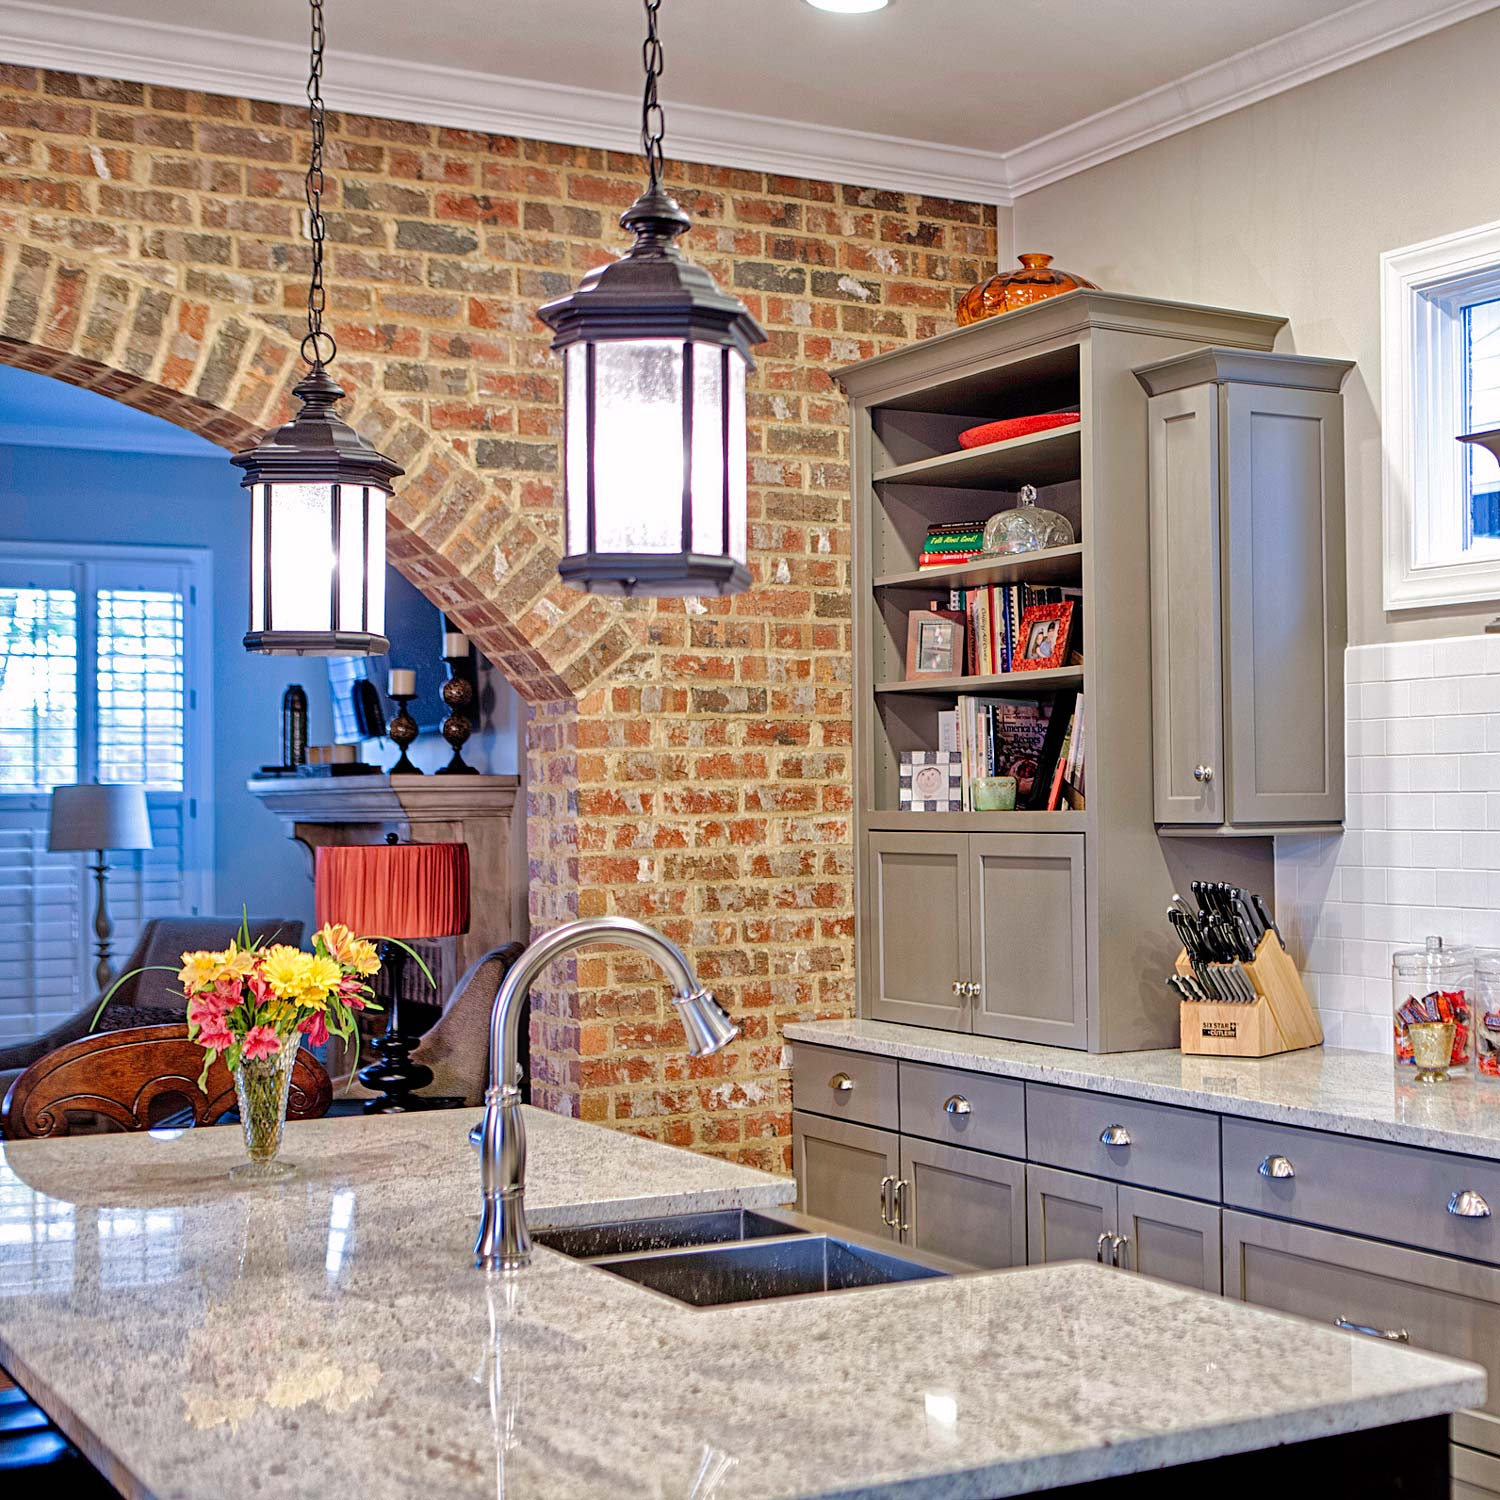 This moderately priced kitchen was built to evoke the carriage house style of New Orleans or the loft spaces found in Chicago.